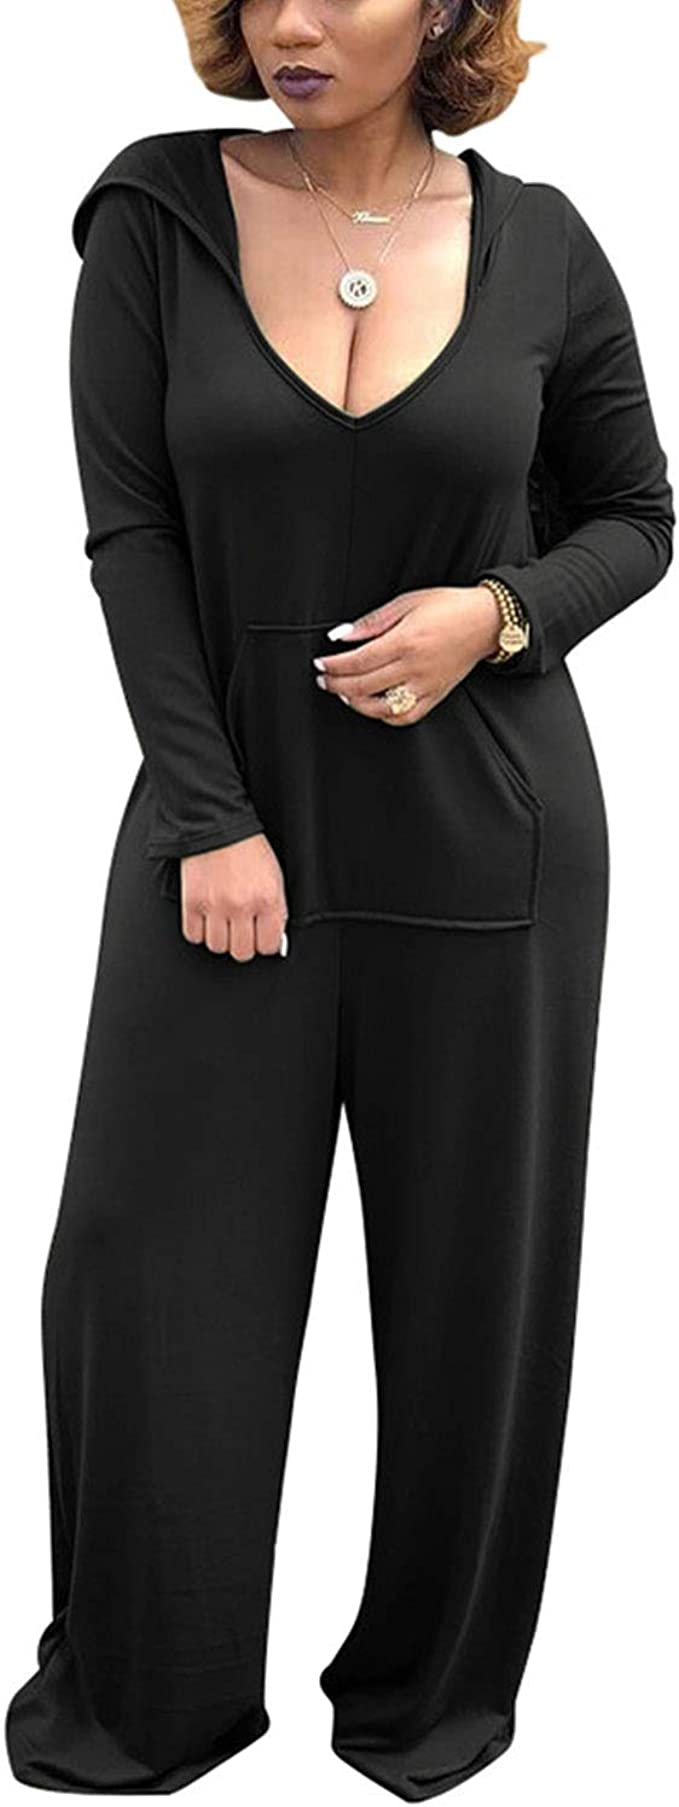 Womens Long Sleeve Plain Hooded Front Pockets All In One Jumpsuits XS-S